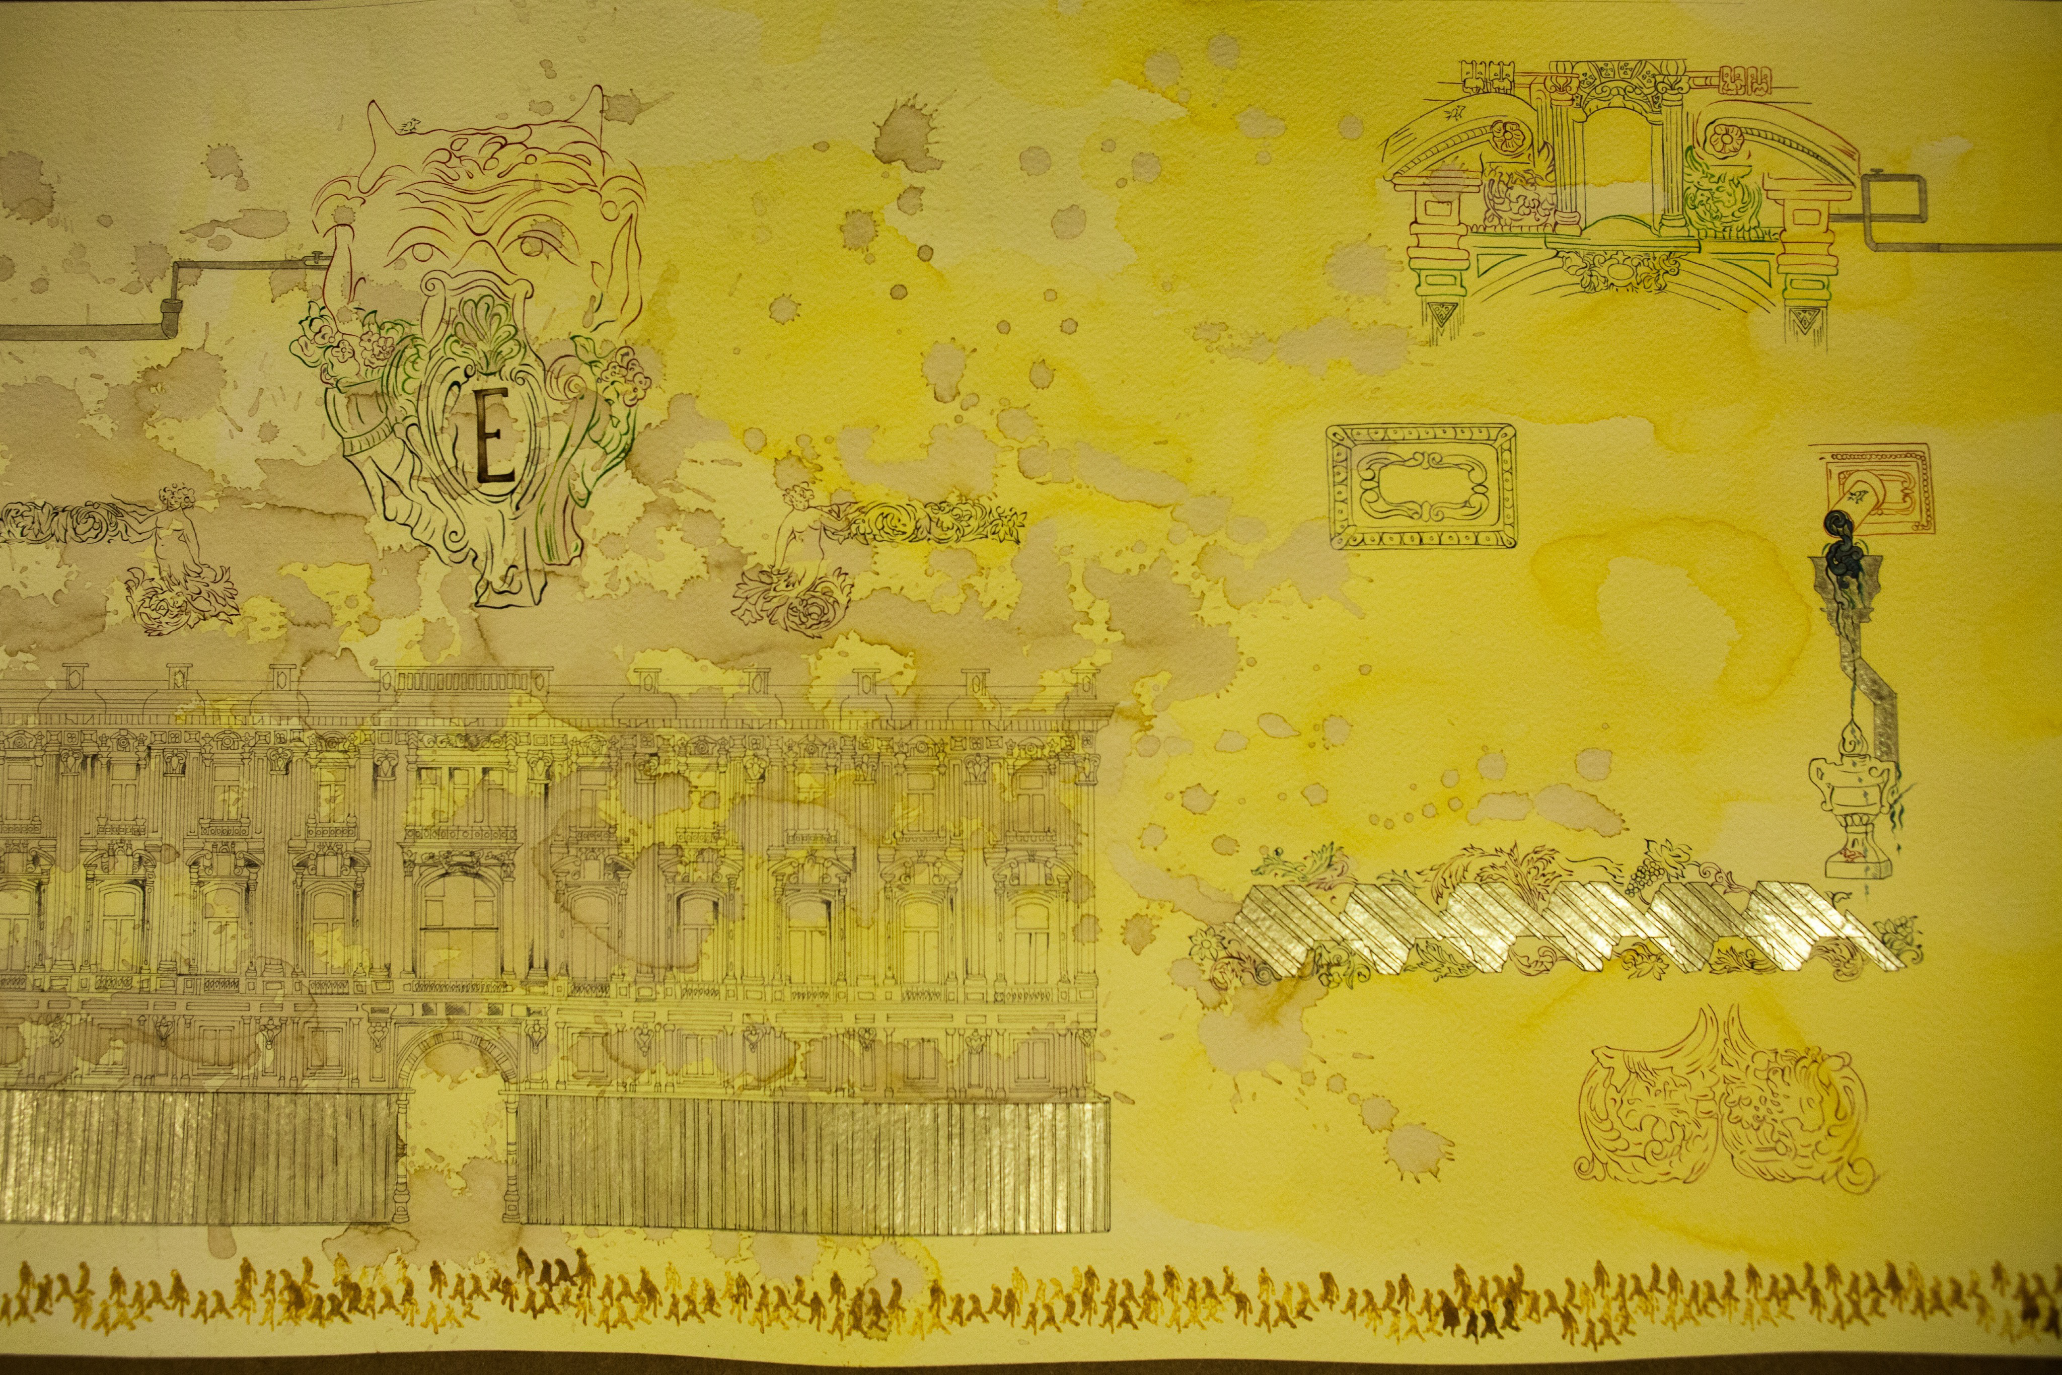 Cansu Çakar, Himenoplastik Panorama, detail, 2015,  watercolour, ink, safran, nigella and gold on paper